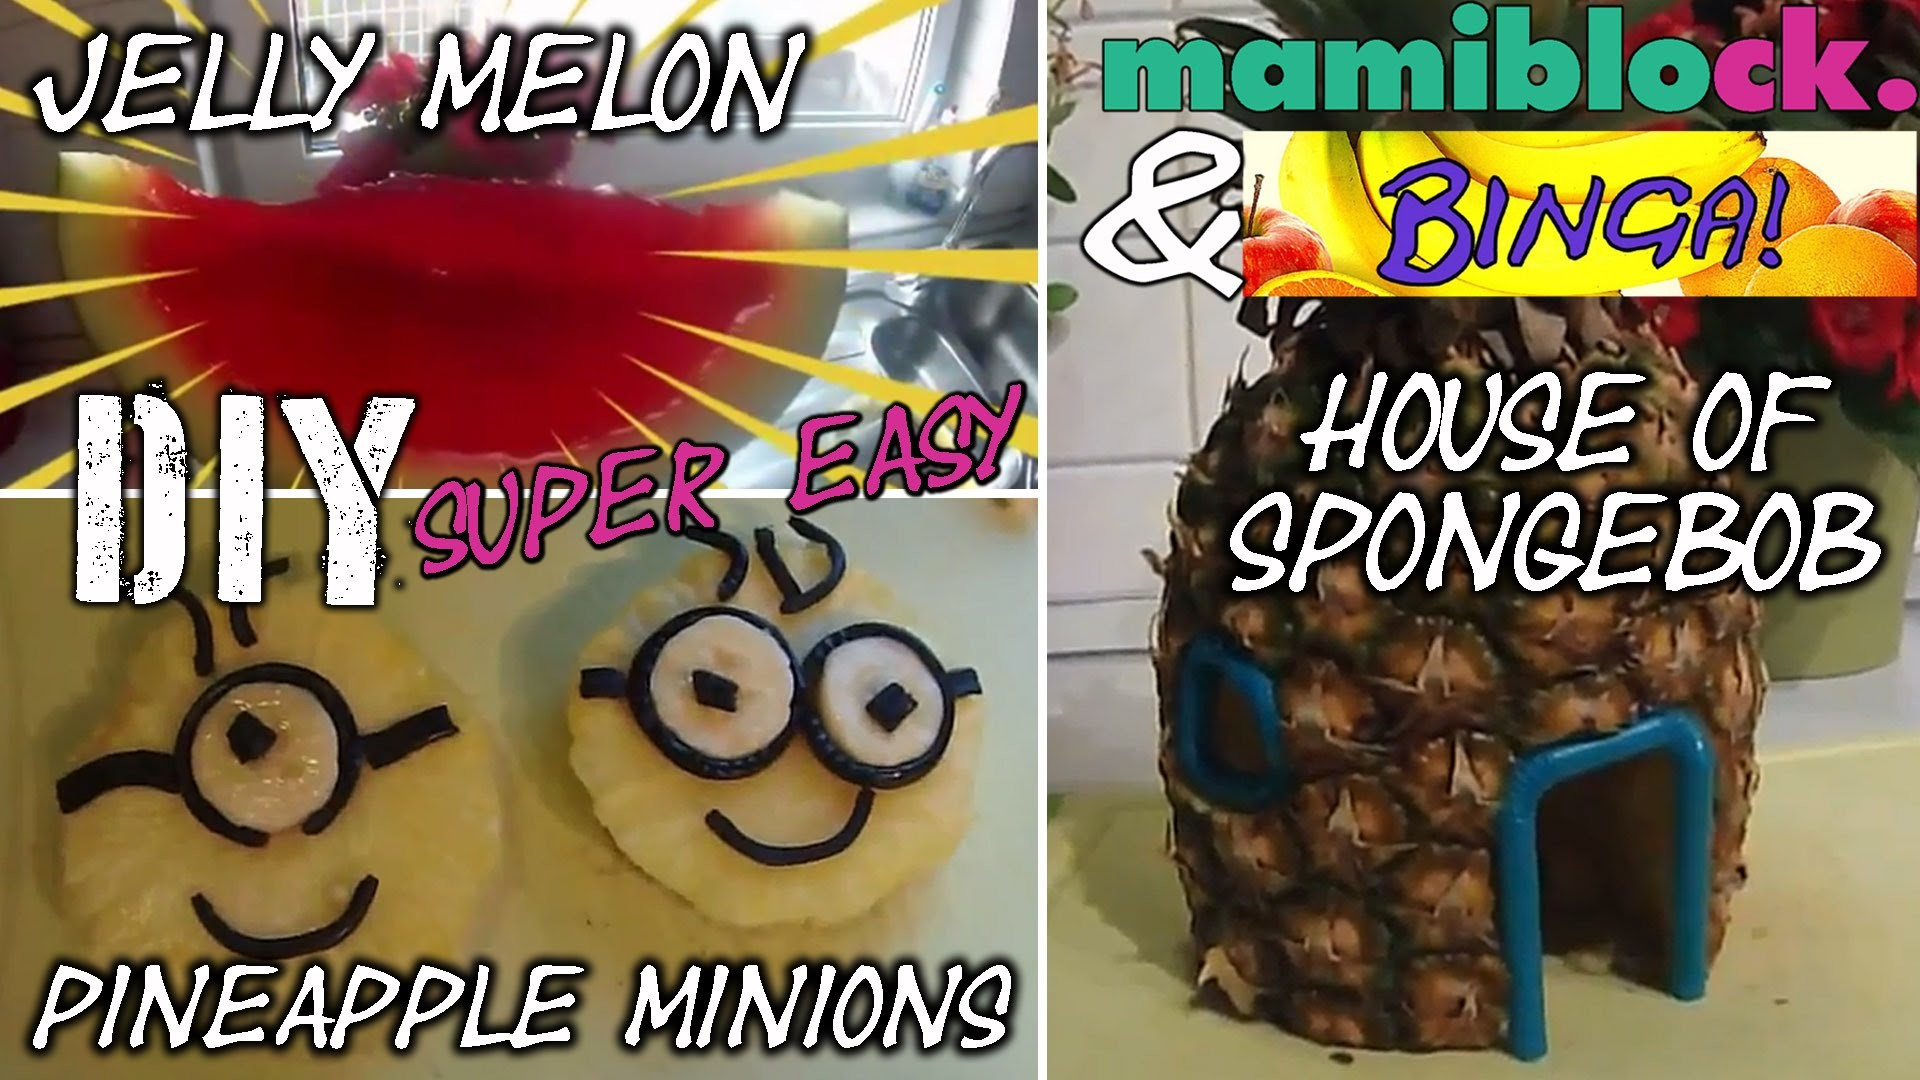 DIY Ananas Minions | House of Spongebob | Jelly Watermelon | Fruit Carving | mamiblock & BINGA